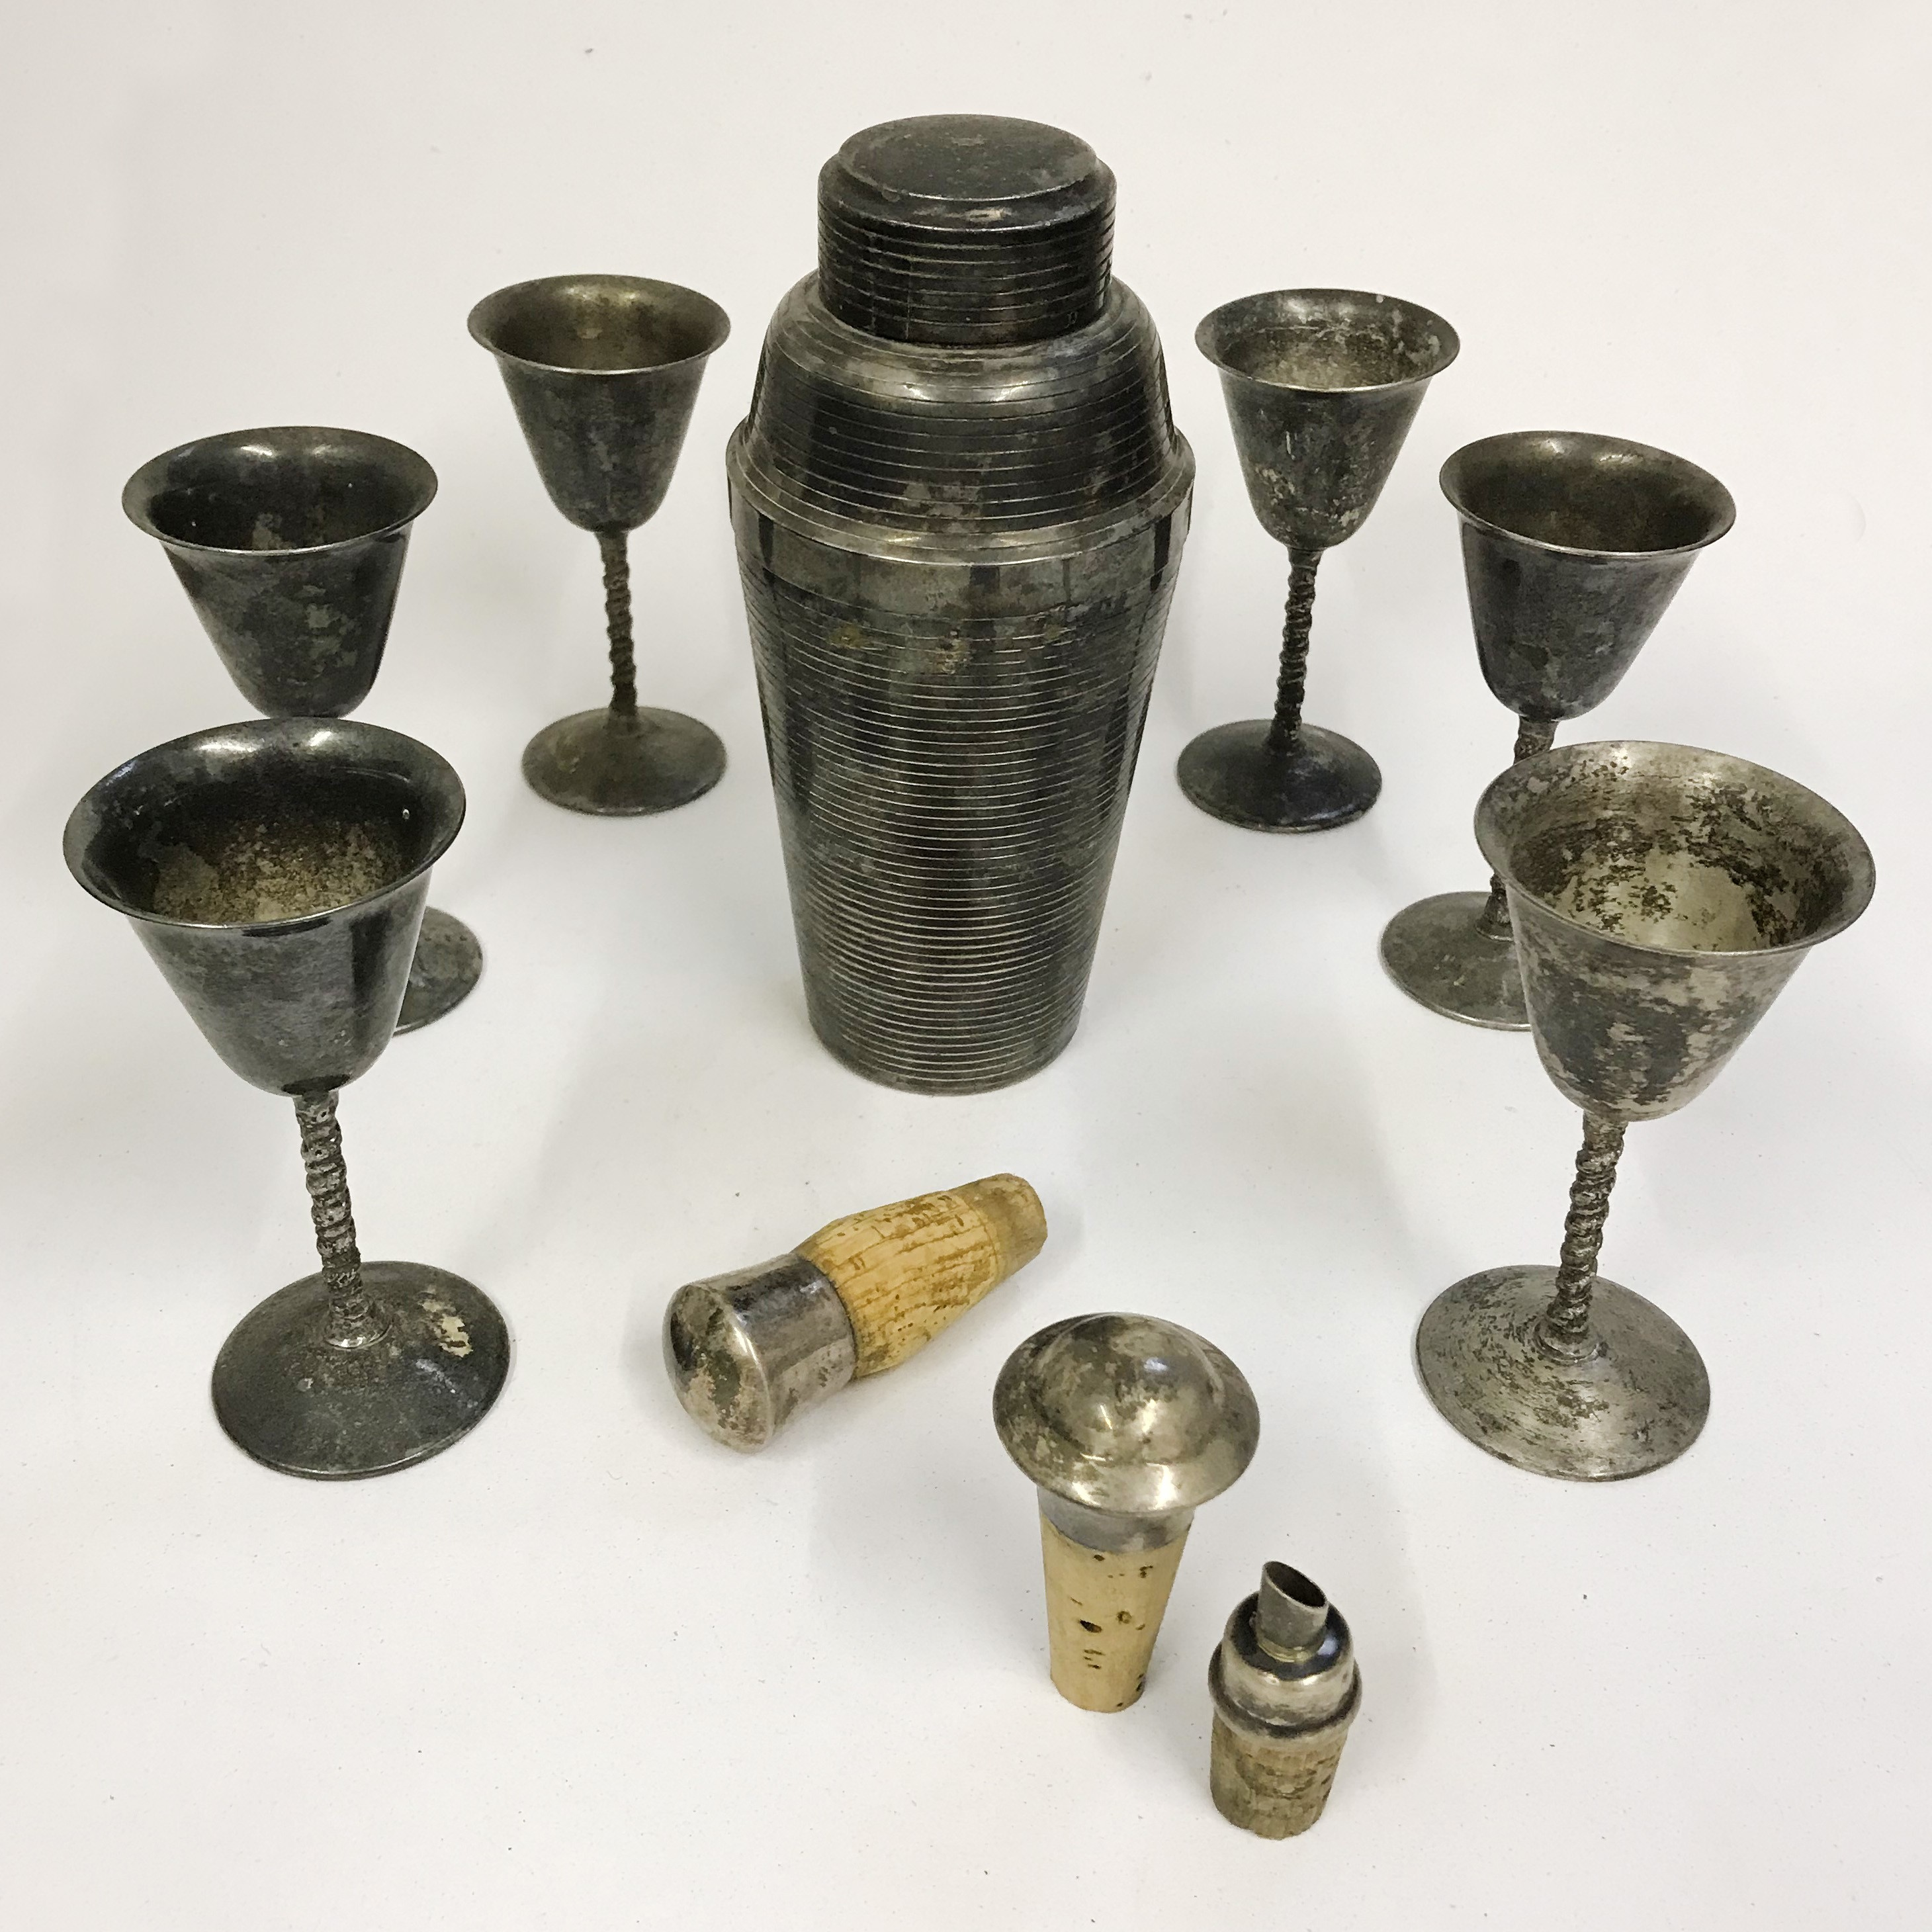 Lot 46 - Drinking Accessories - Vintage Cocktail Shaker, Six Goblets and Bottle Stoppers